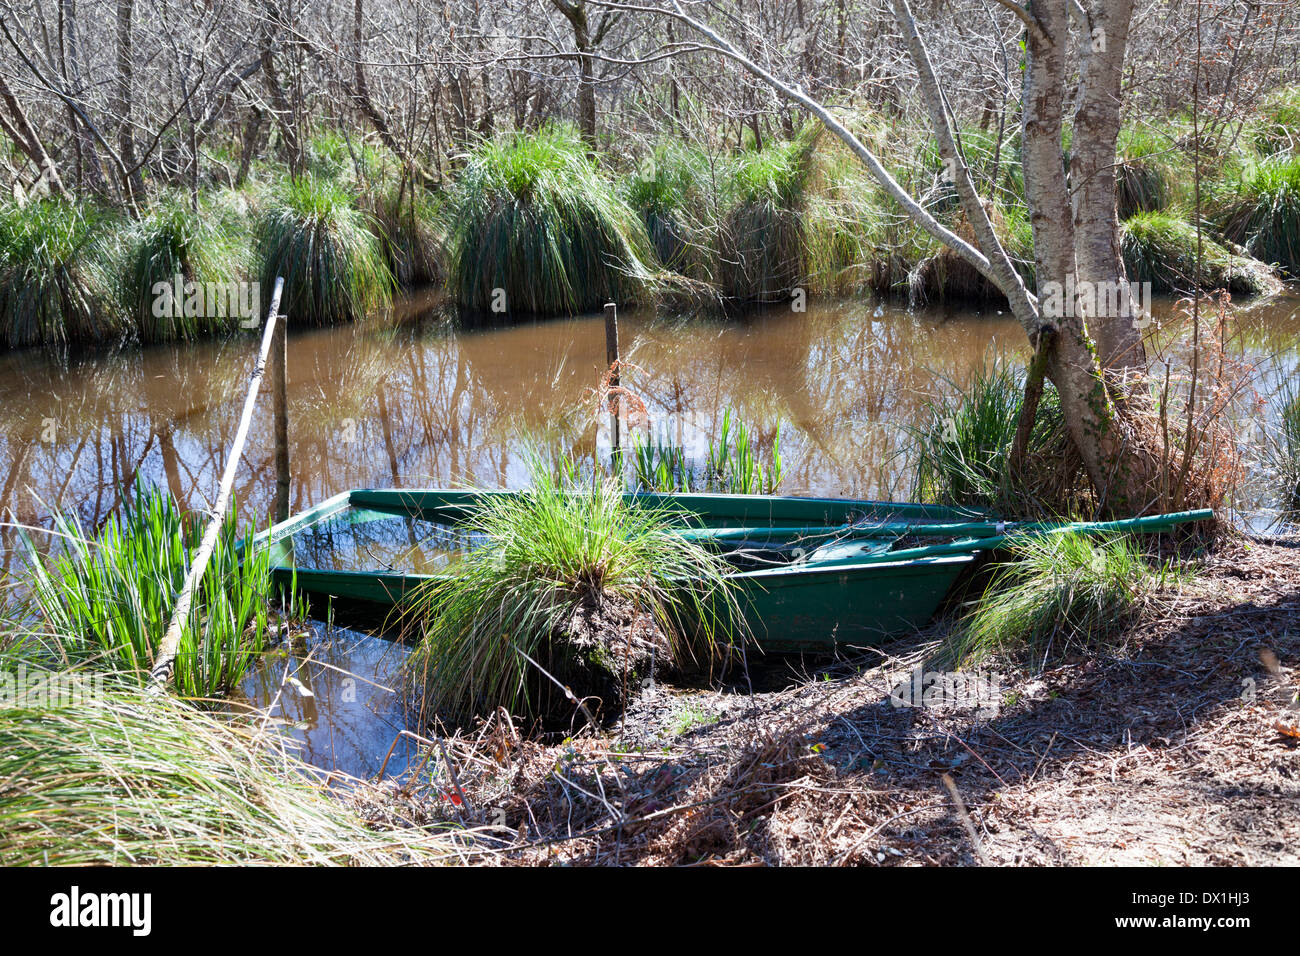 The shallow outlying marshes of the Leon pond (France); only a flat-bottomed small boat allows to circulate through them. - Stock Image